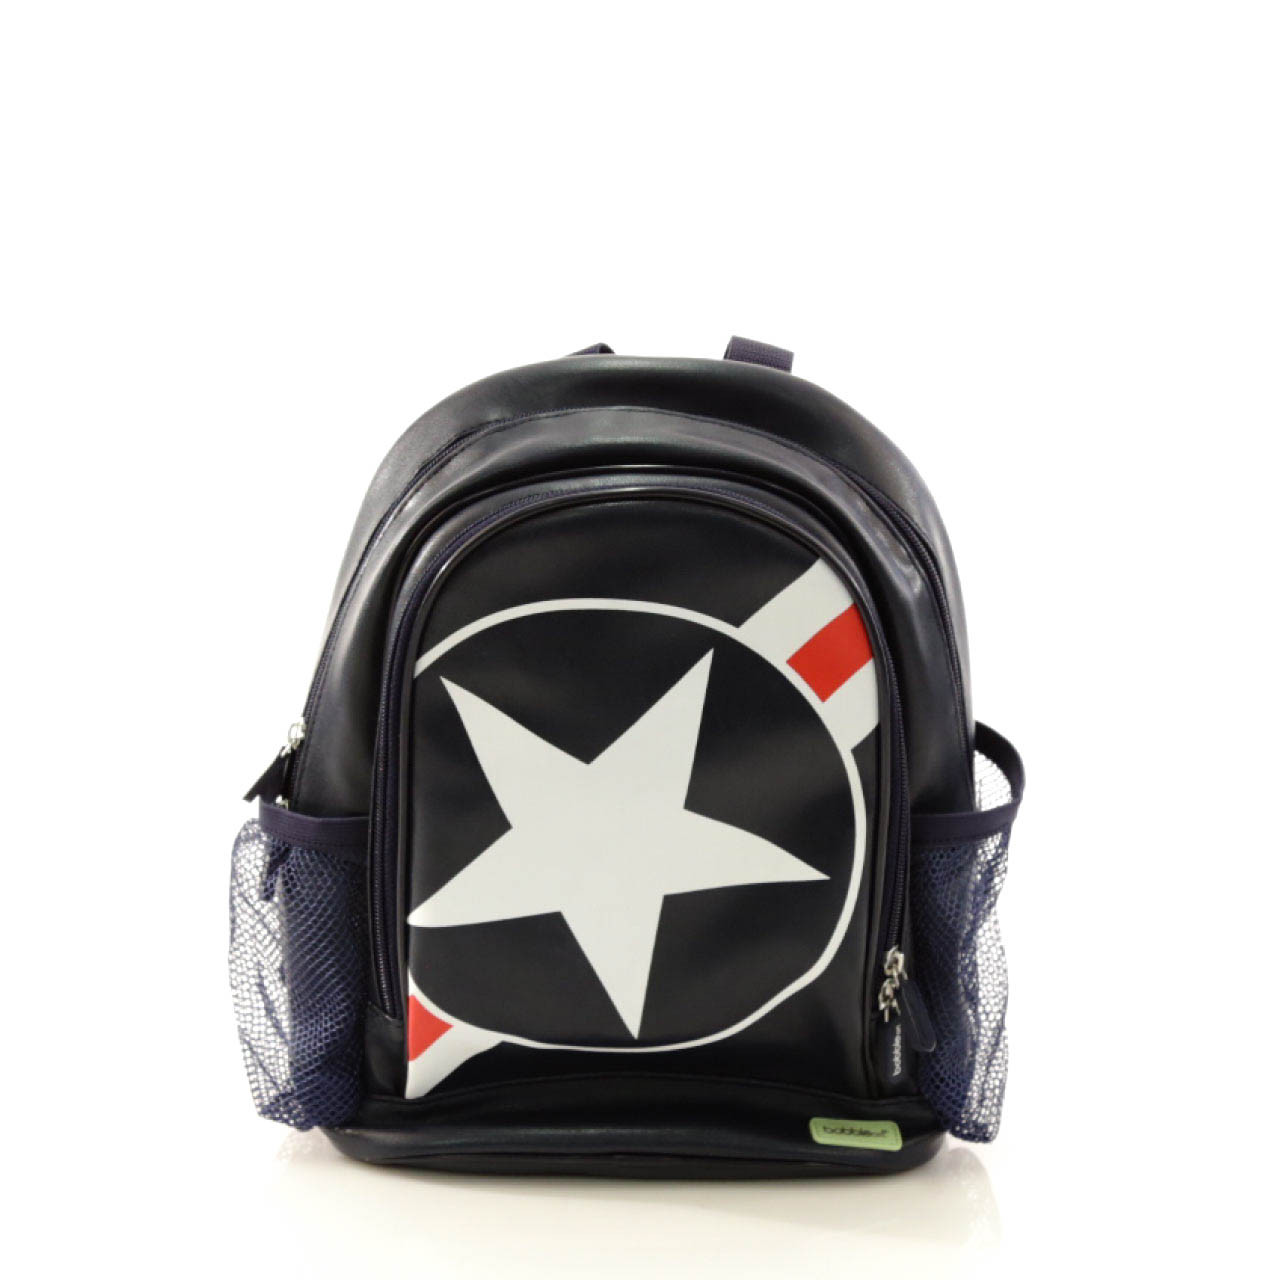 420c3ee6b2 Bobble Art Small Toddler Backpack. See more images